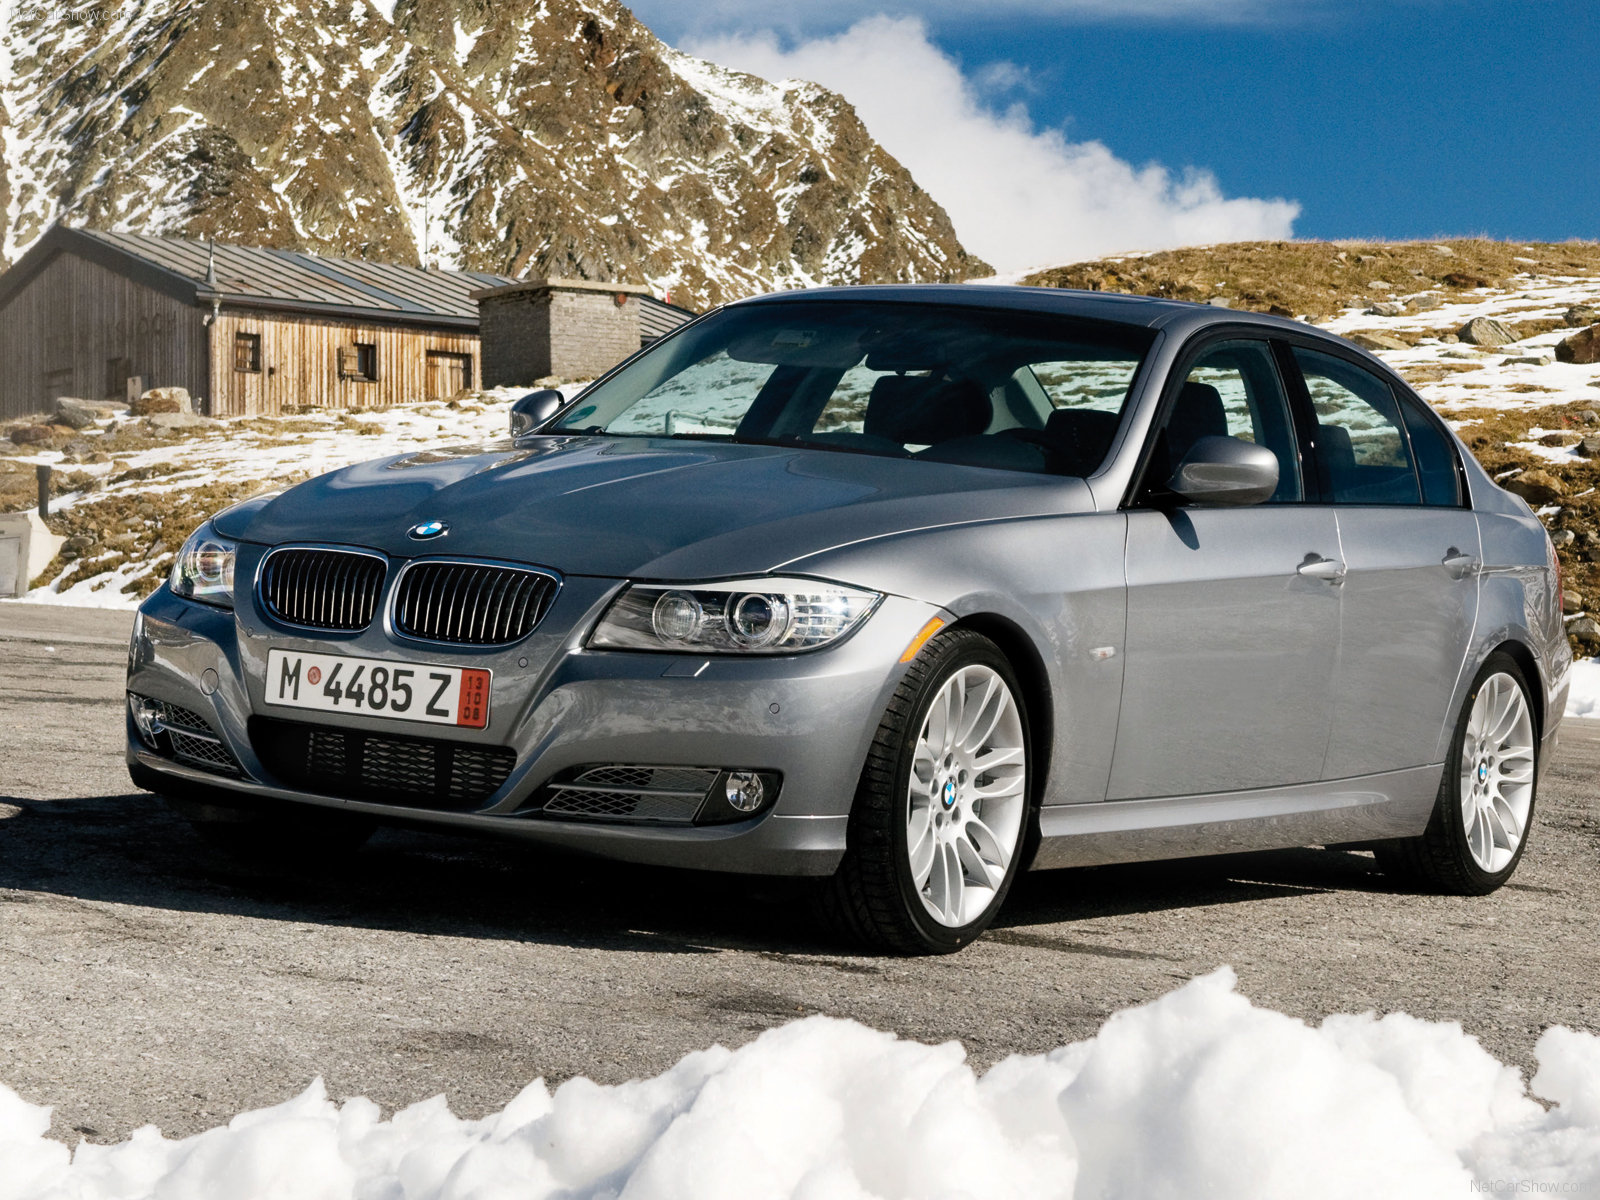 bmw 3 series e90 photos photogallery with 67 pics. Black Bedroom Furniture Sets. Home Design Ideas